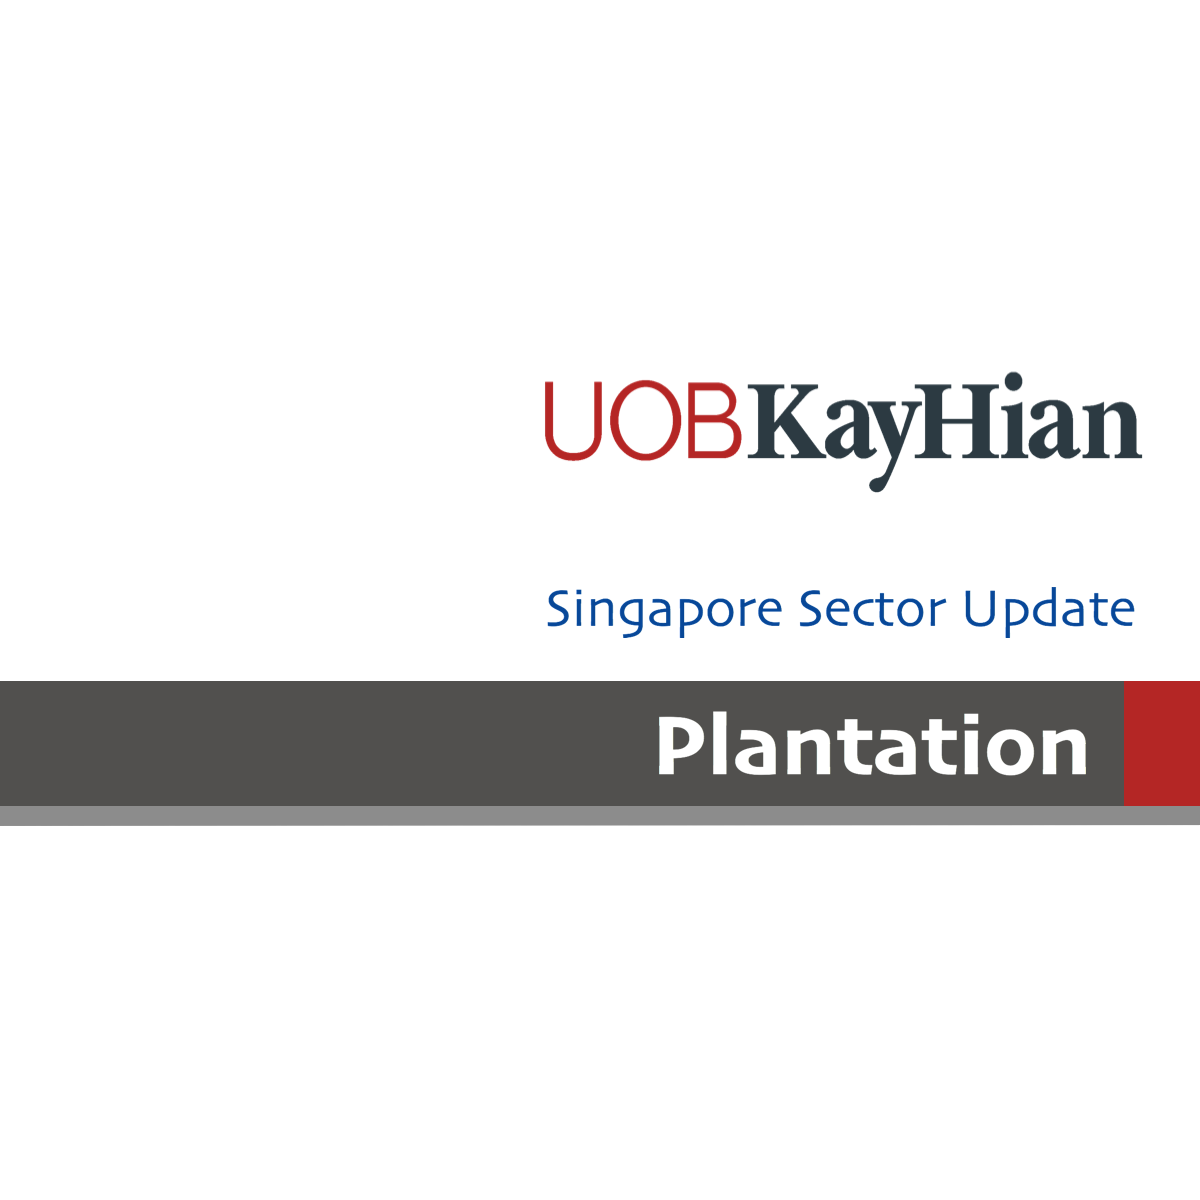 Plantation - UOB Kay Hian 2017-01-06: Plantation Companies' Share Prices Underperform CPO Prices